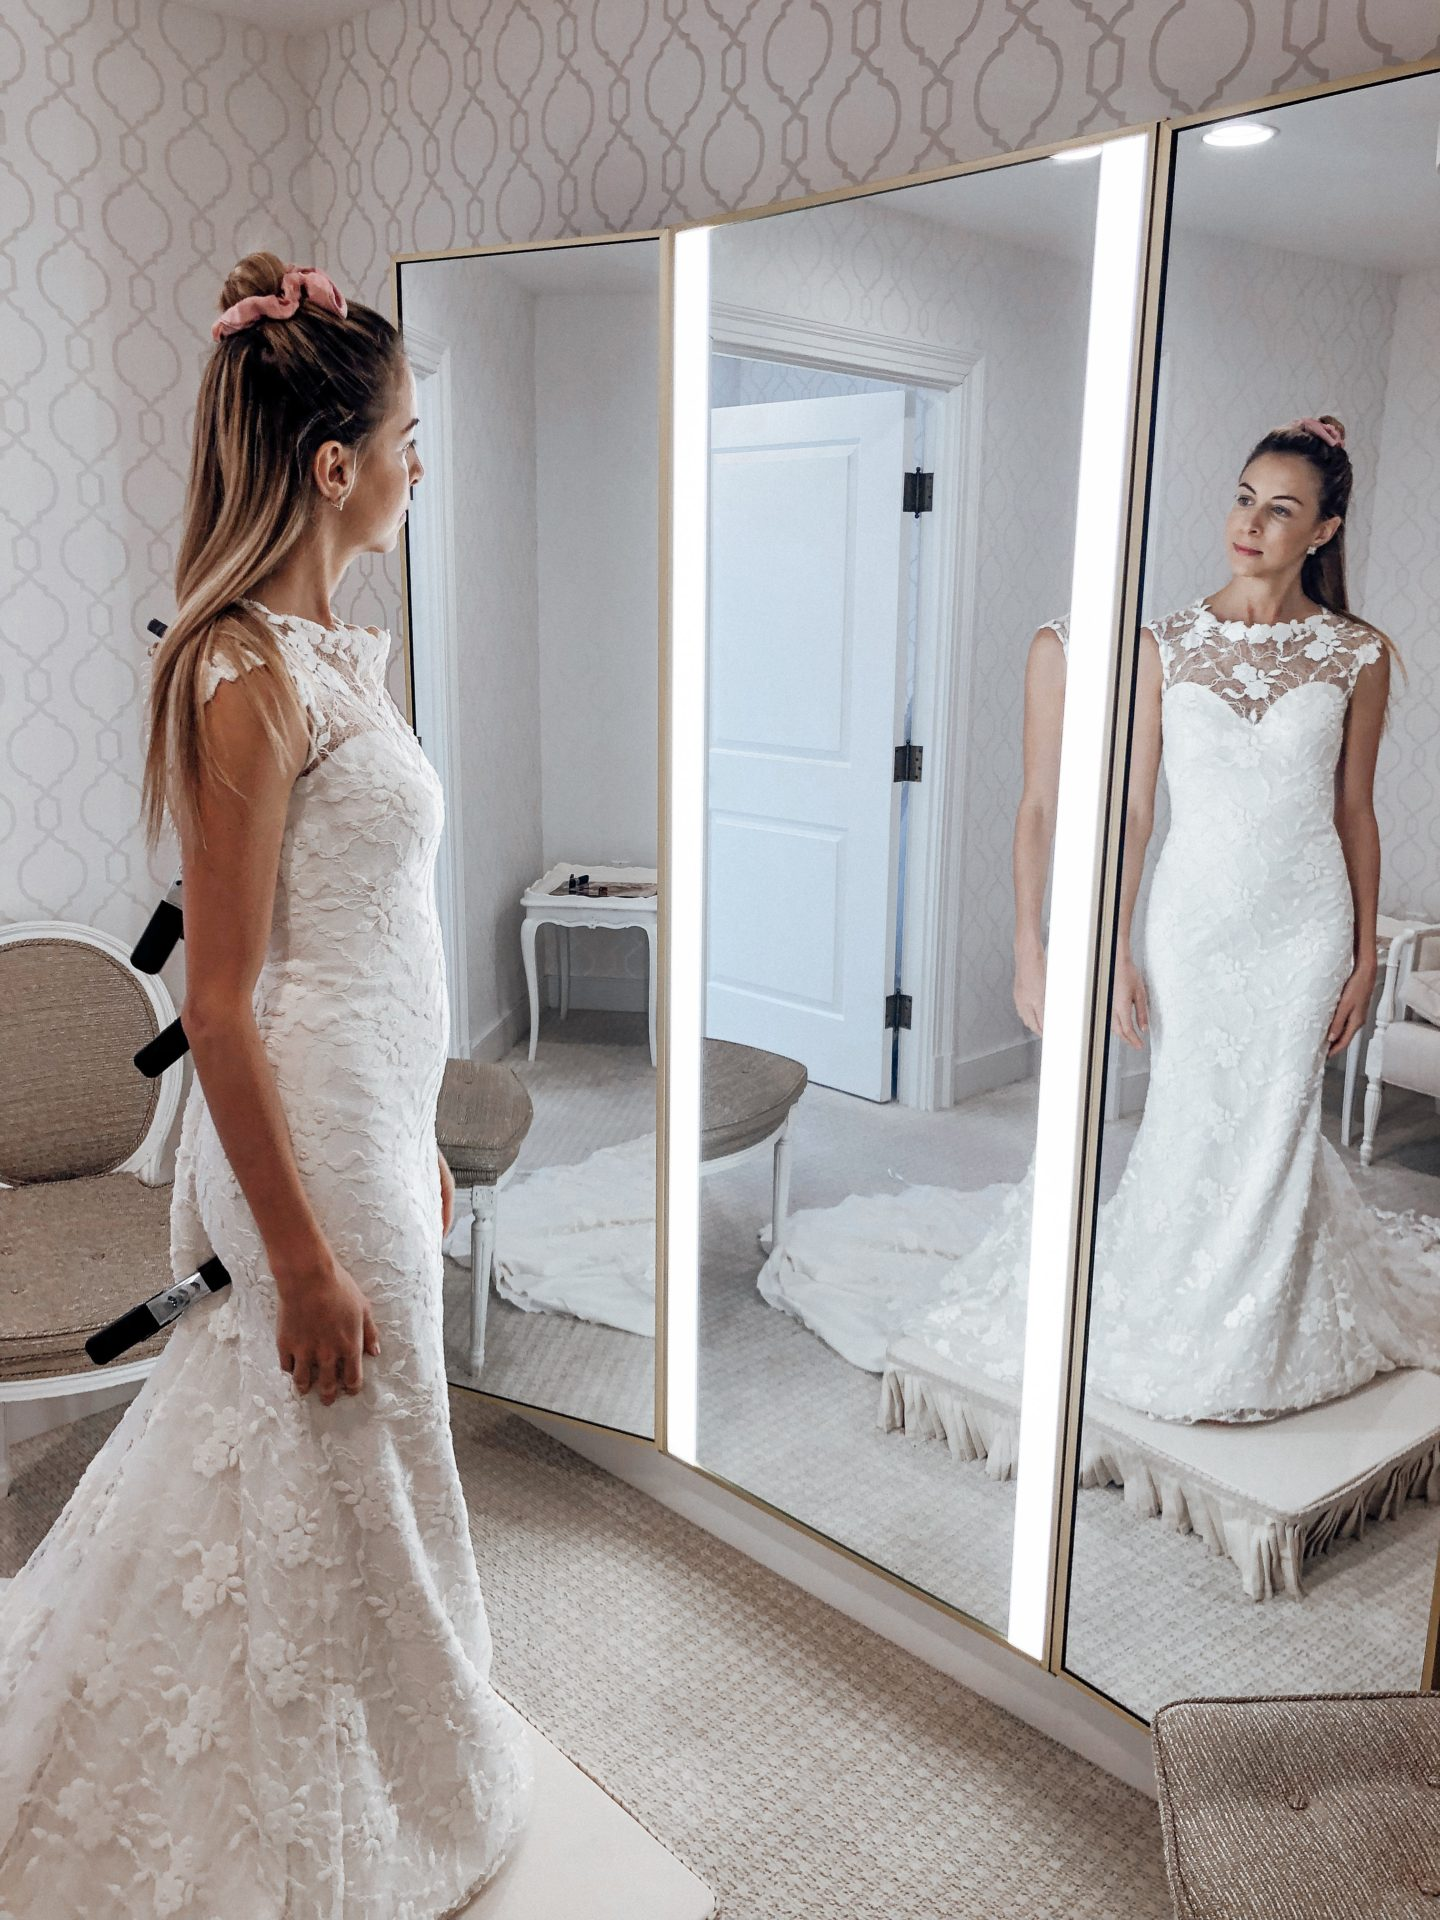 59d7dfce6d3 Wedding Dress Shopping Tips  A guide for what I wish I knew - The ...